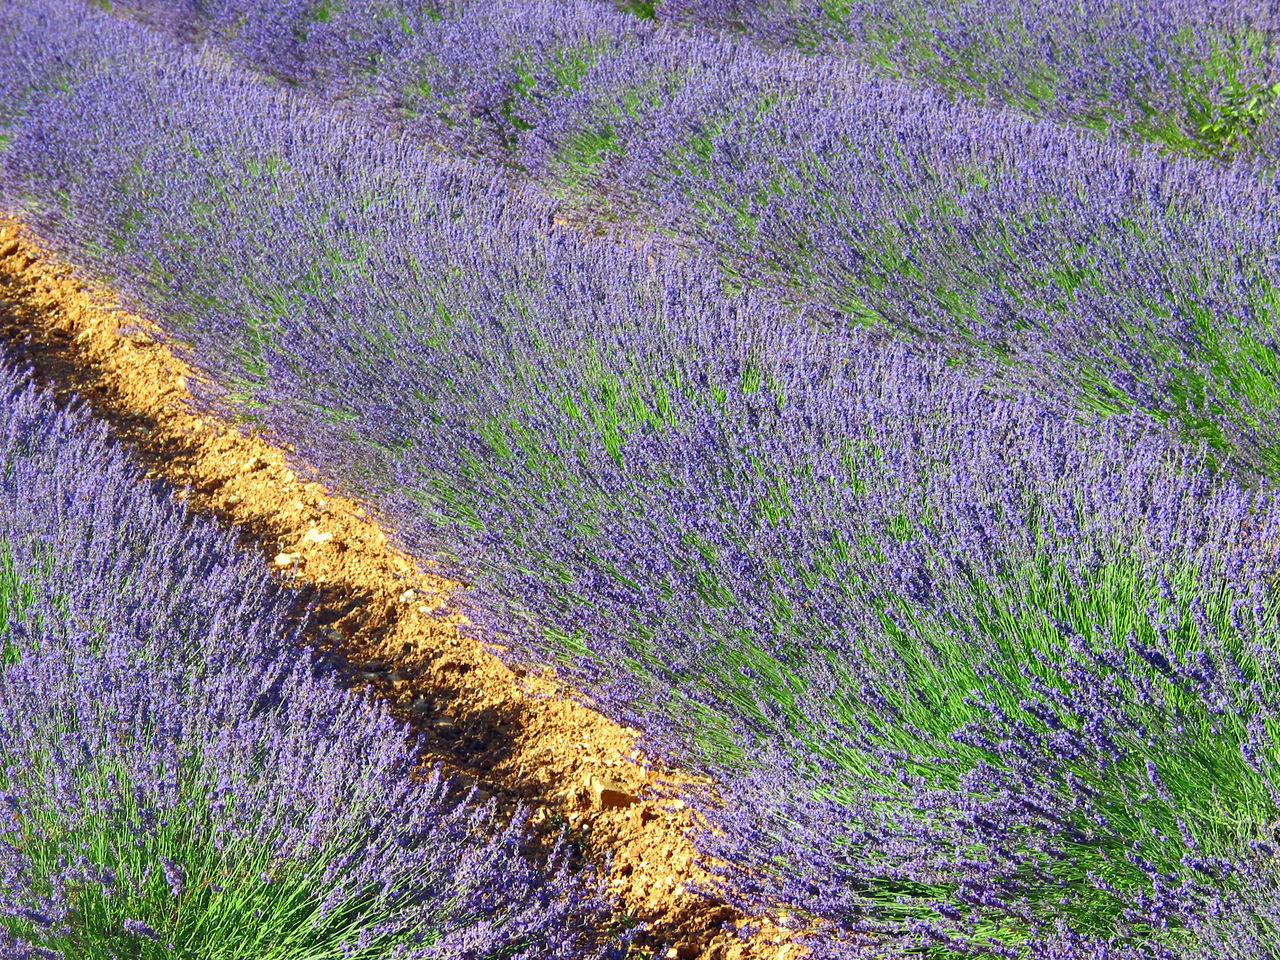 High Angle View Of Lavender Growing On Field